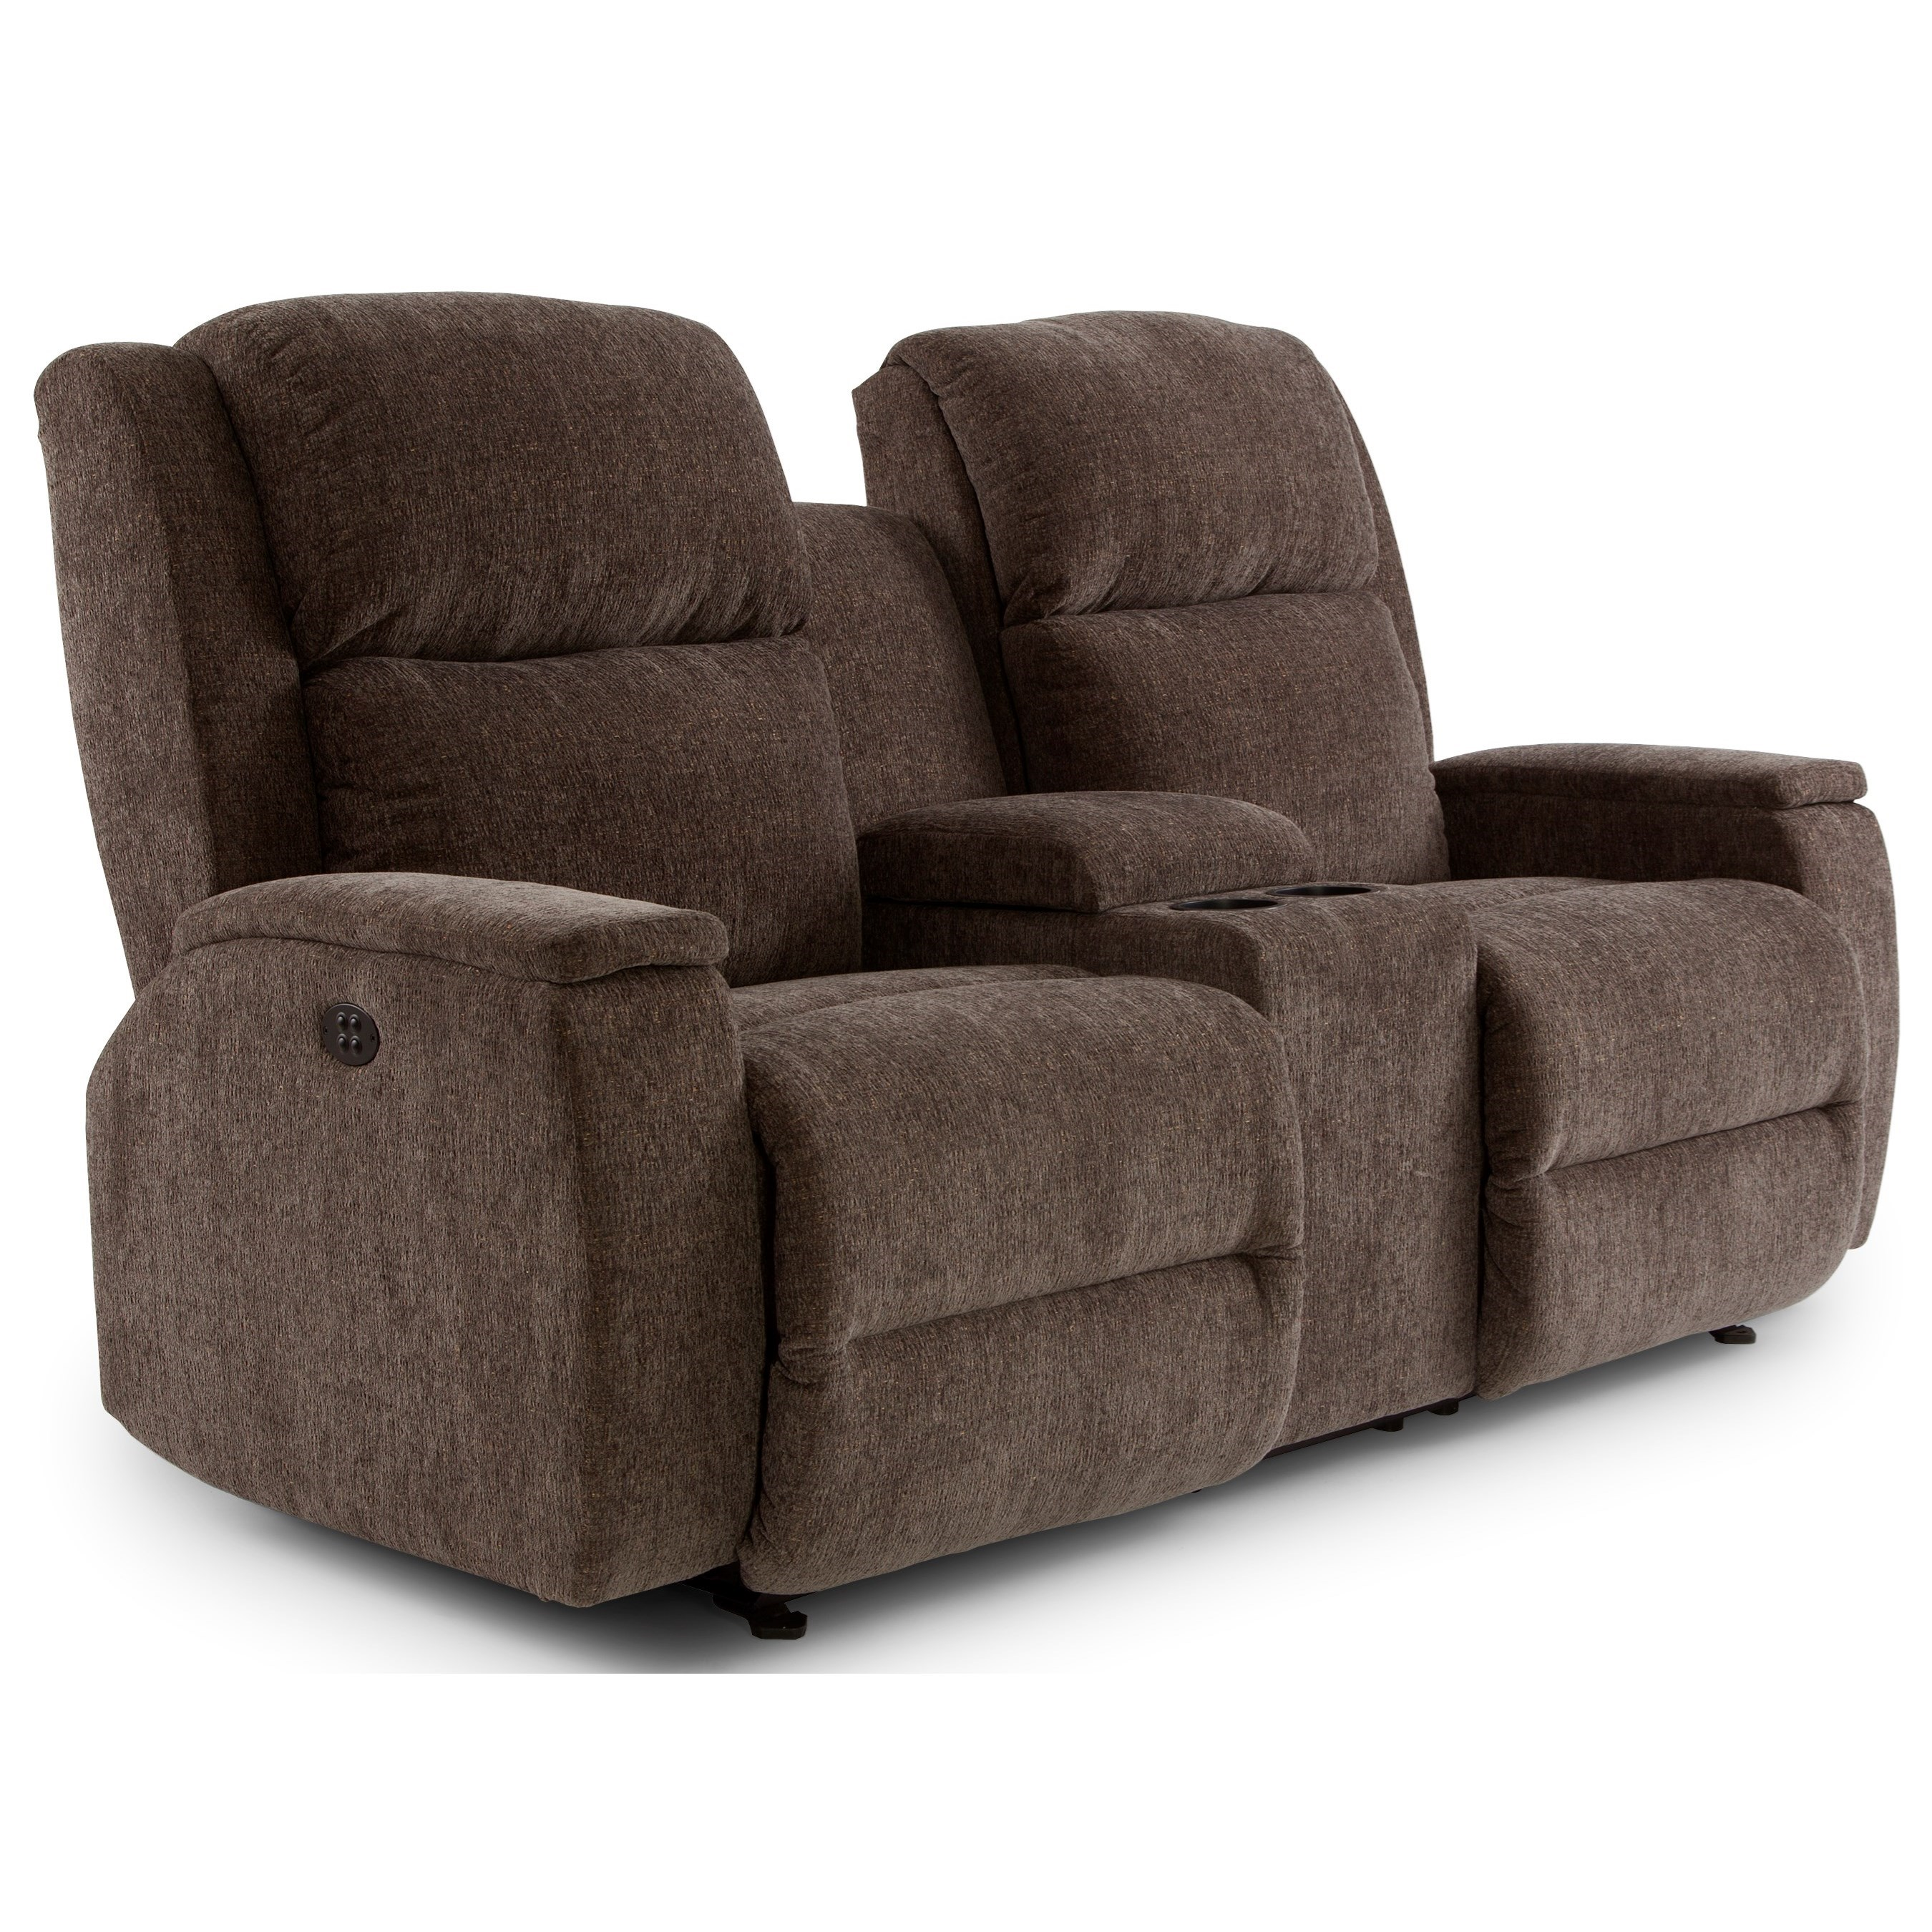 Power rocking reclining console loveseat with power tilt headrest by best home furnishings Rocking loveseats